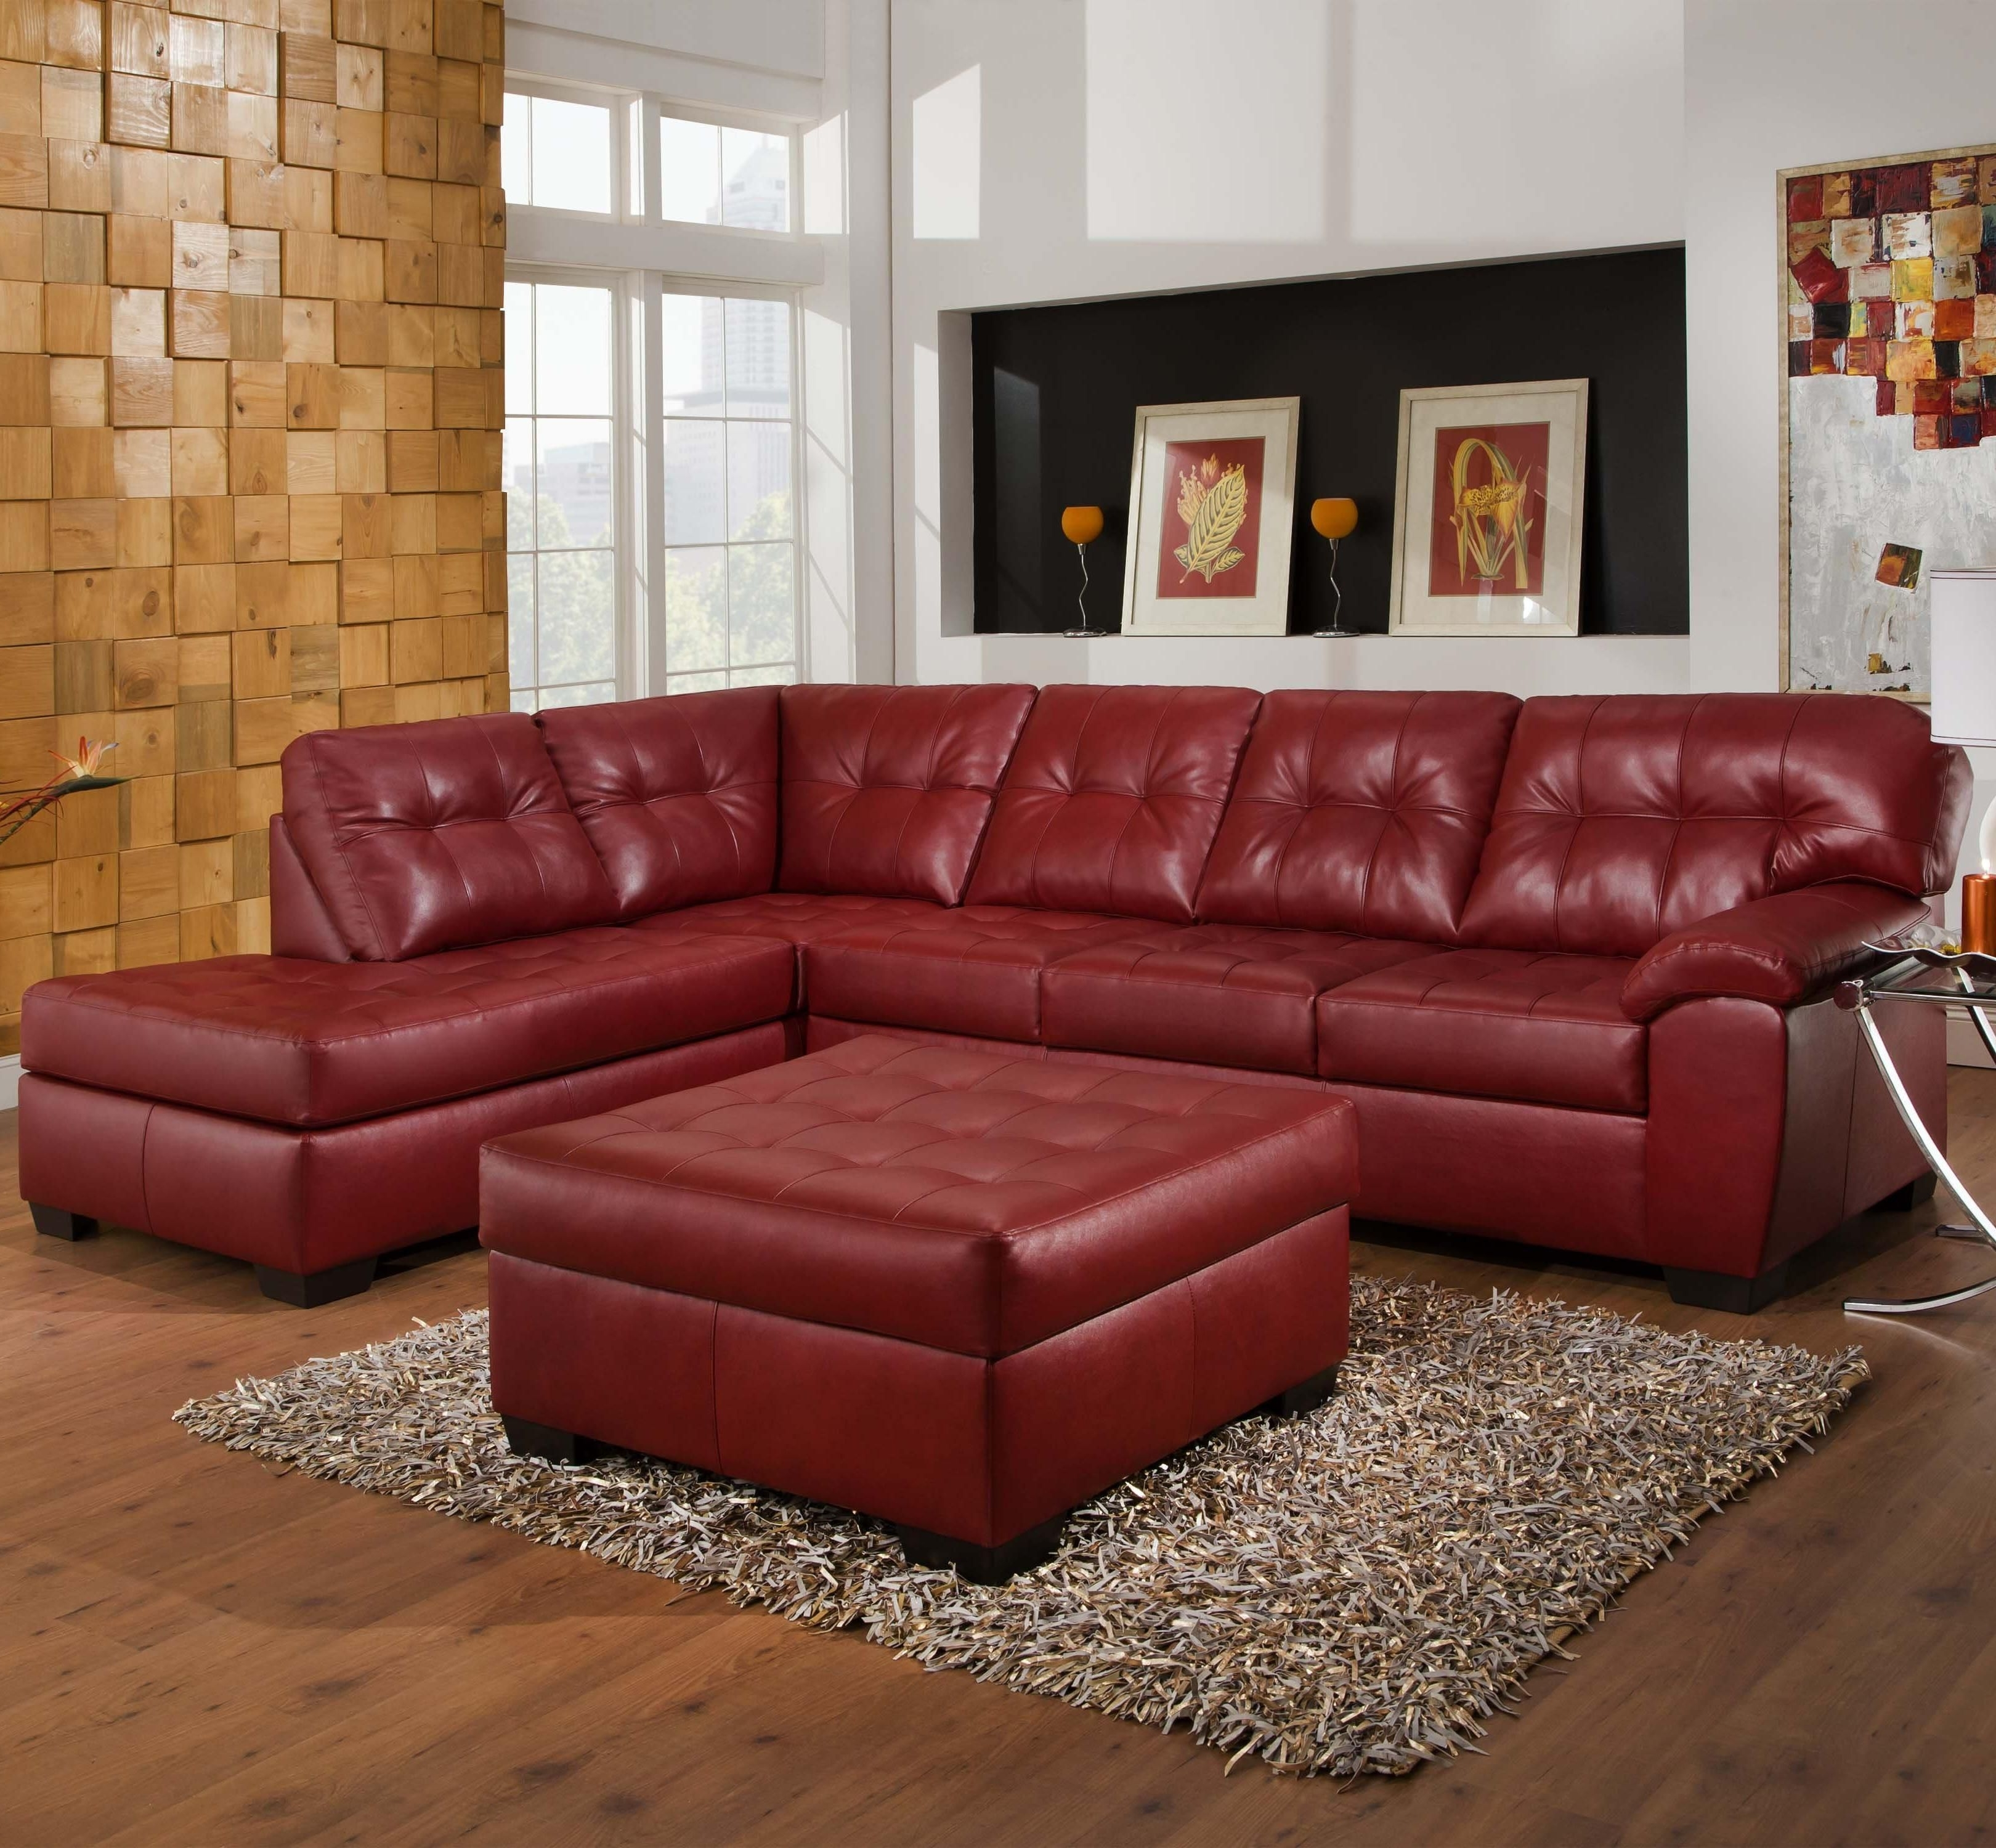 Current Jackson Ms Sectional Sofas With 9569 2 Piece Sectional With Tufted Seats & Backsimmons (View 5 of 20)